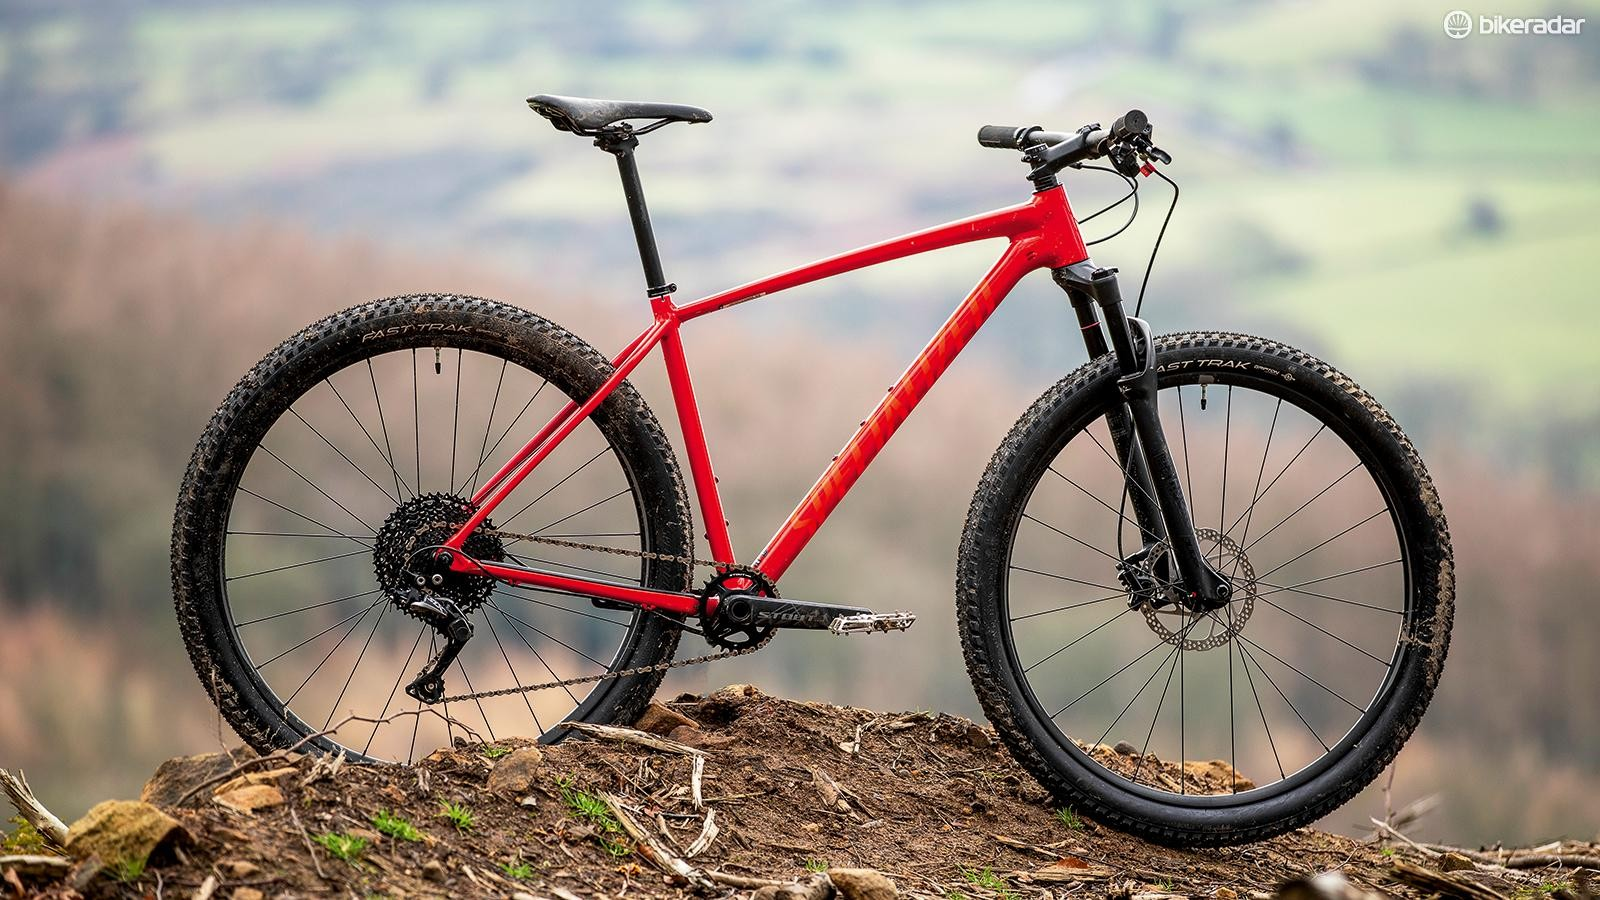 Most alloy bikes use oversized tubing, but the Chisel has similar dimensions to those on steel bikes